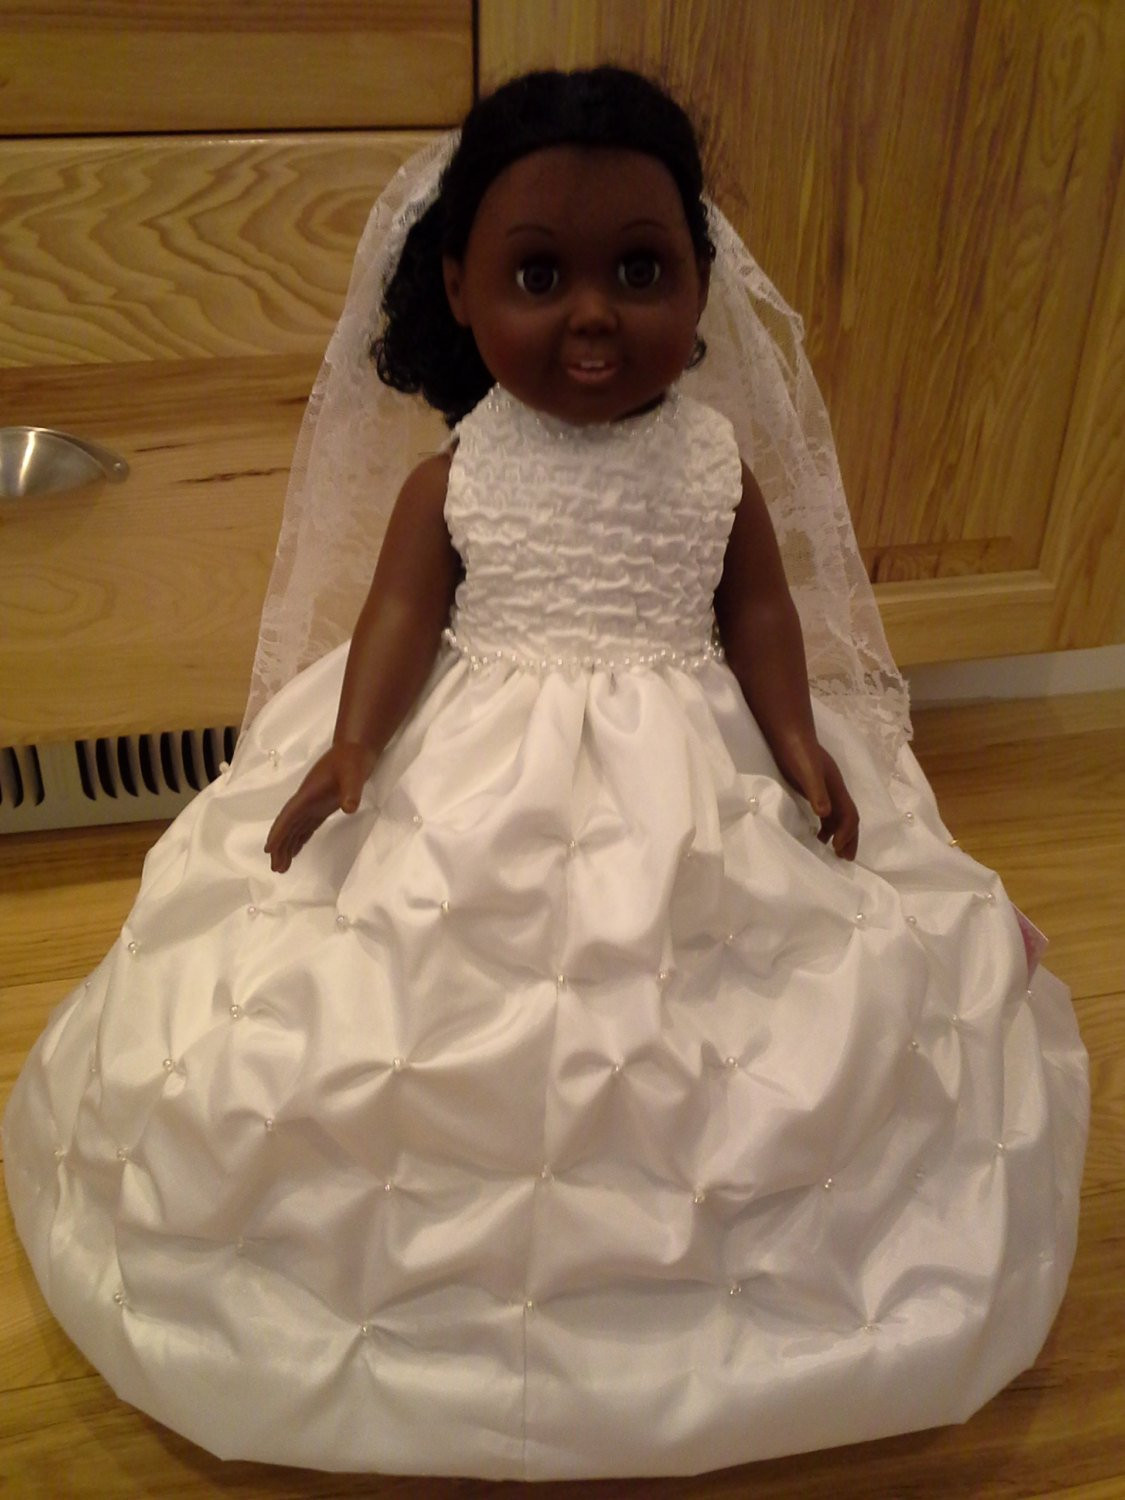 Elegant Doll Wedding Gown and Veil American Girl Doll American Girl Doll Wedding Dress Of Unique Karen Mom Of Three S Craft Blog New From Rosie S Patterns American Girl Doll Wedding Dress